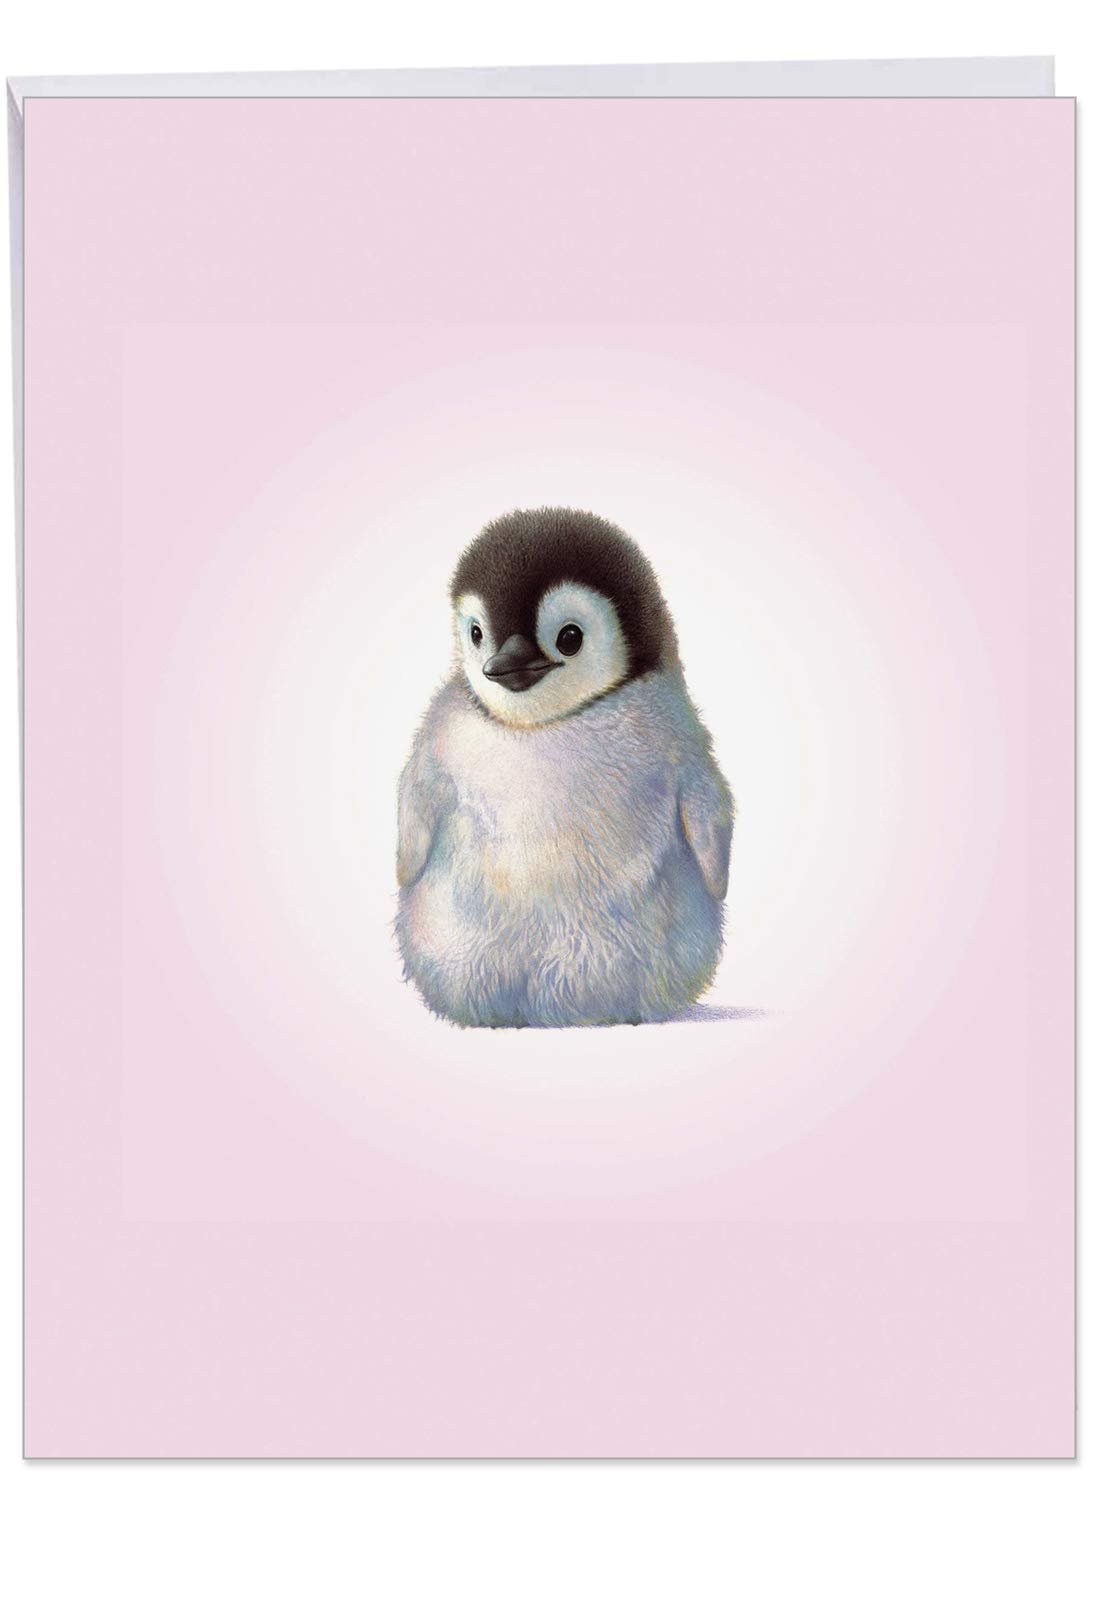 Birthday Card 'Zoo Babies-Penguin Birthday' with Envelope 8.5 x 11 Inch - Adorable Baby Penguin Greeting You A Happy Birthday - Zoo and Circus Animal Stationery Greeting Notecard J6726BBDG